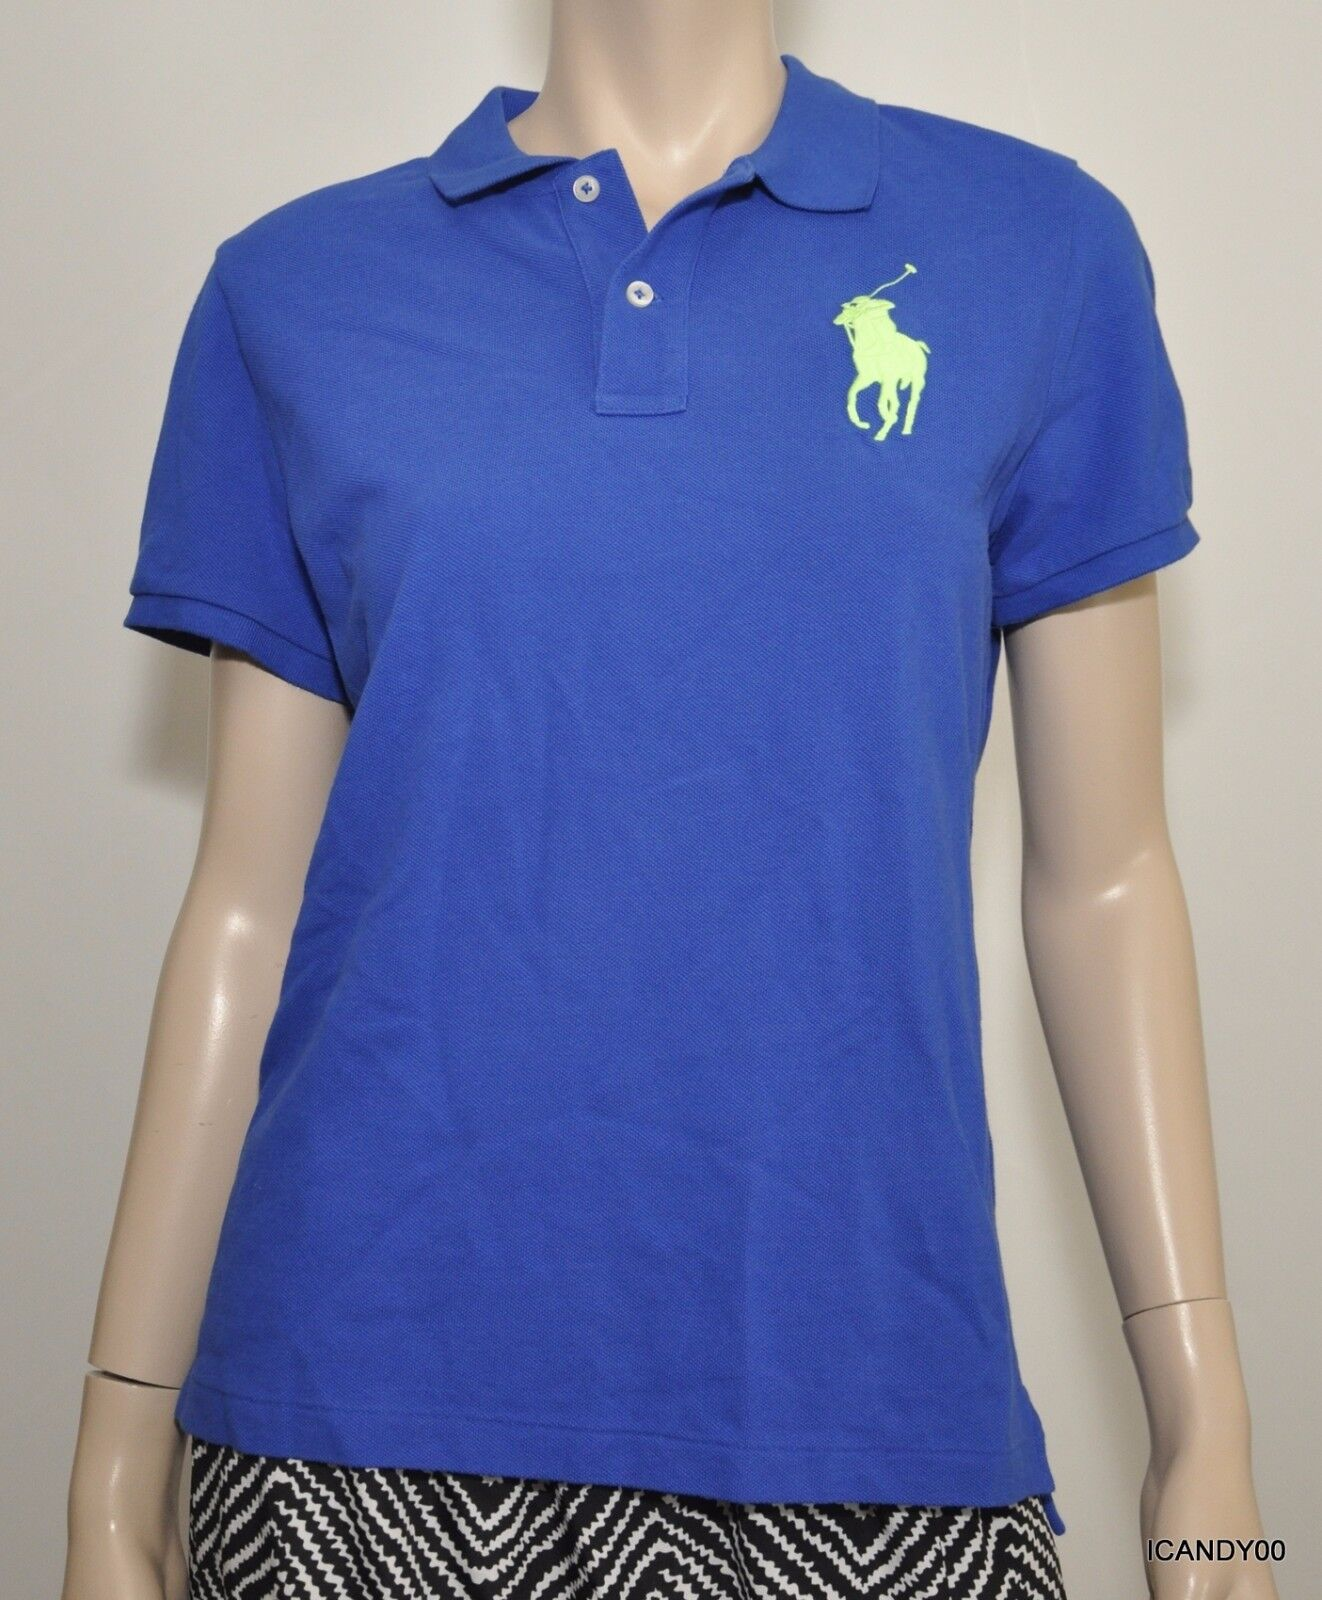 Nwt  Ralph Lauren The Skinny Fit Polo Big Pony Mesh Cotton Shirt Top bluee L